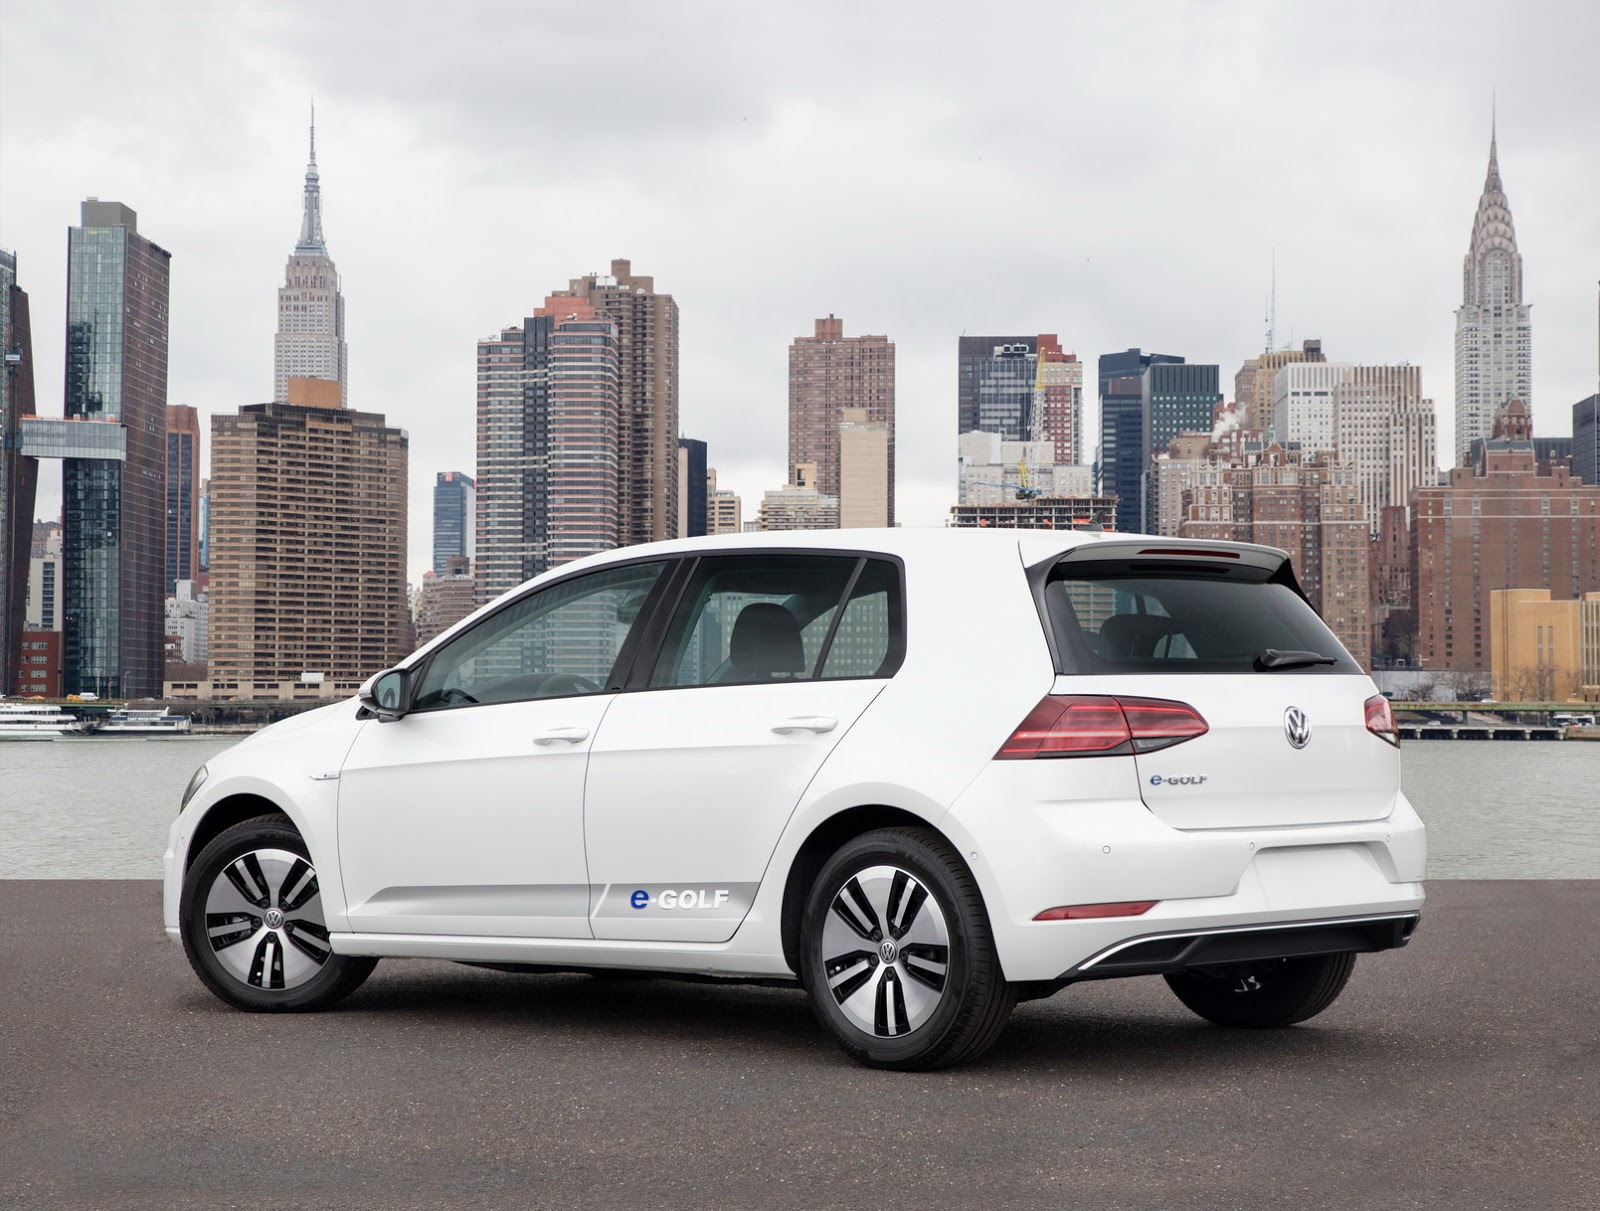 2018 vw golf facelift family including alltrack gti and r debut in new york carscoops. Black Bedroom Furniture Sets. Home Design Ideas